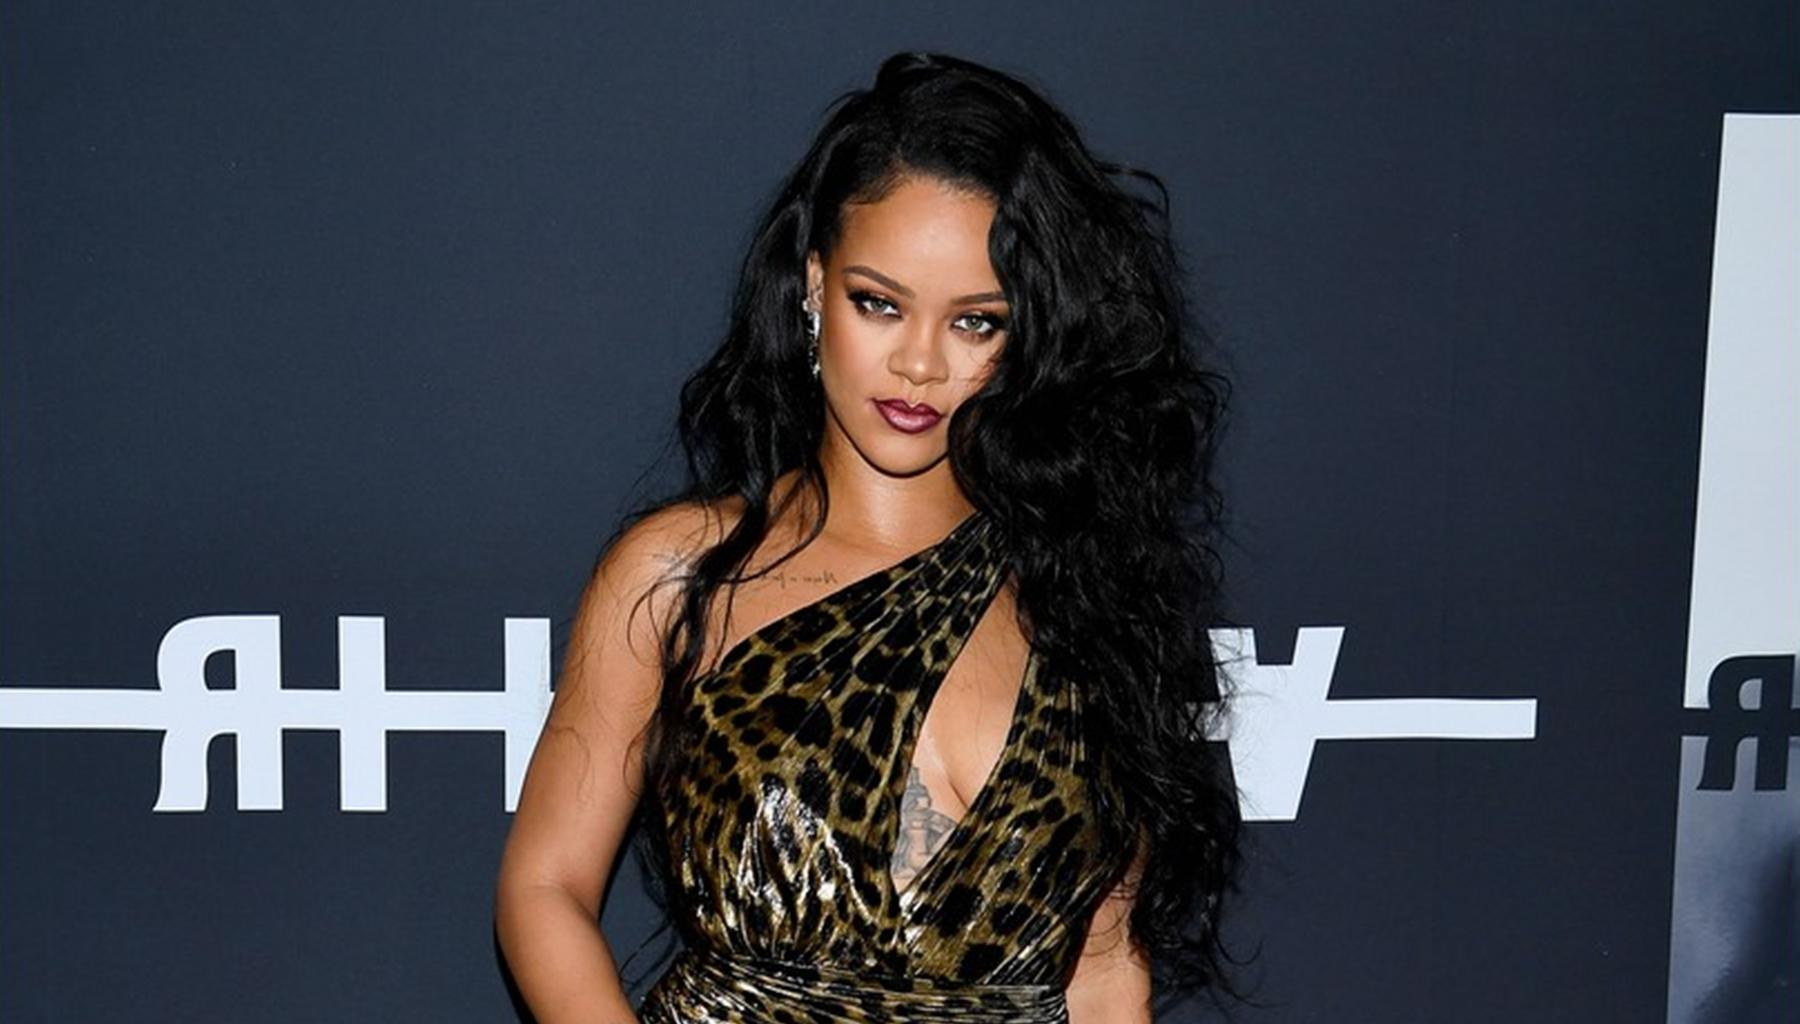 Rihanna Kills It In Leopard Print Dress -- Photos Are A Hit; Fellow Artists Michelle Williams And YG Are Also Rocking This Trend